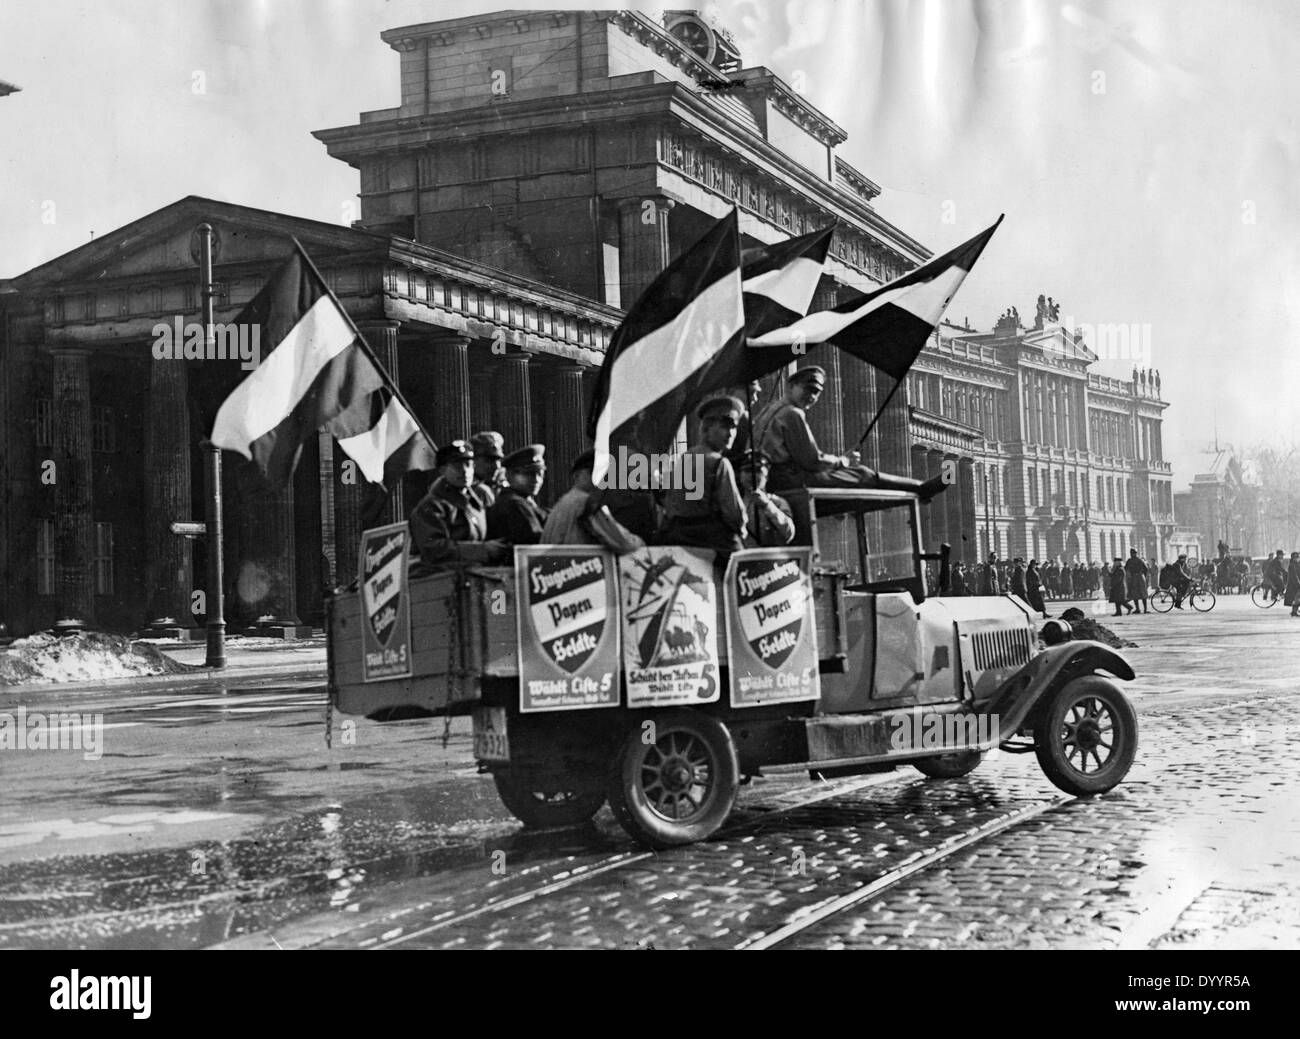 German Nationalist propaganda vehicle, 1933 - Stock Image